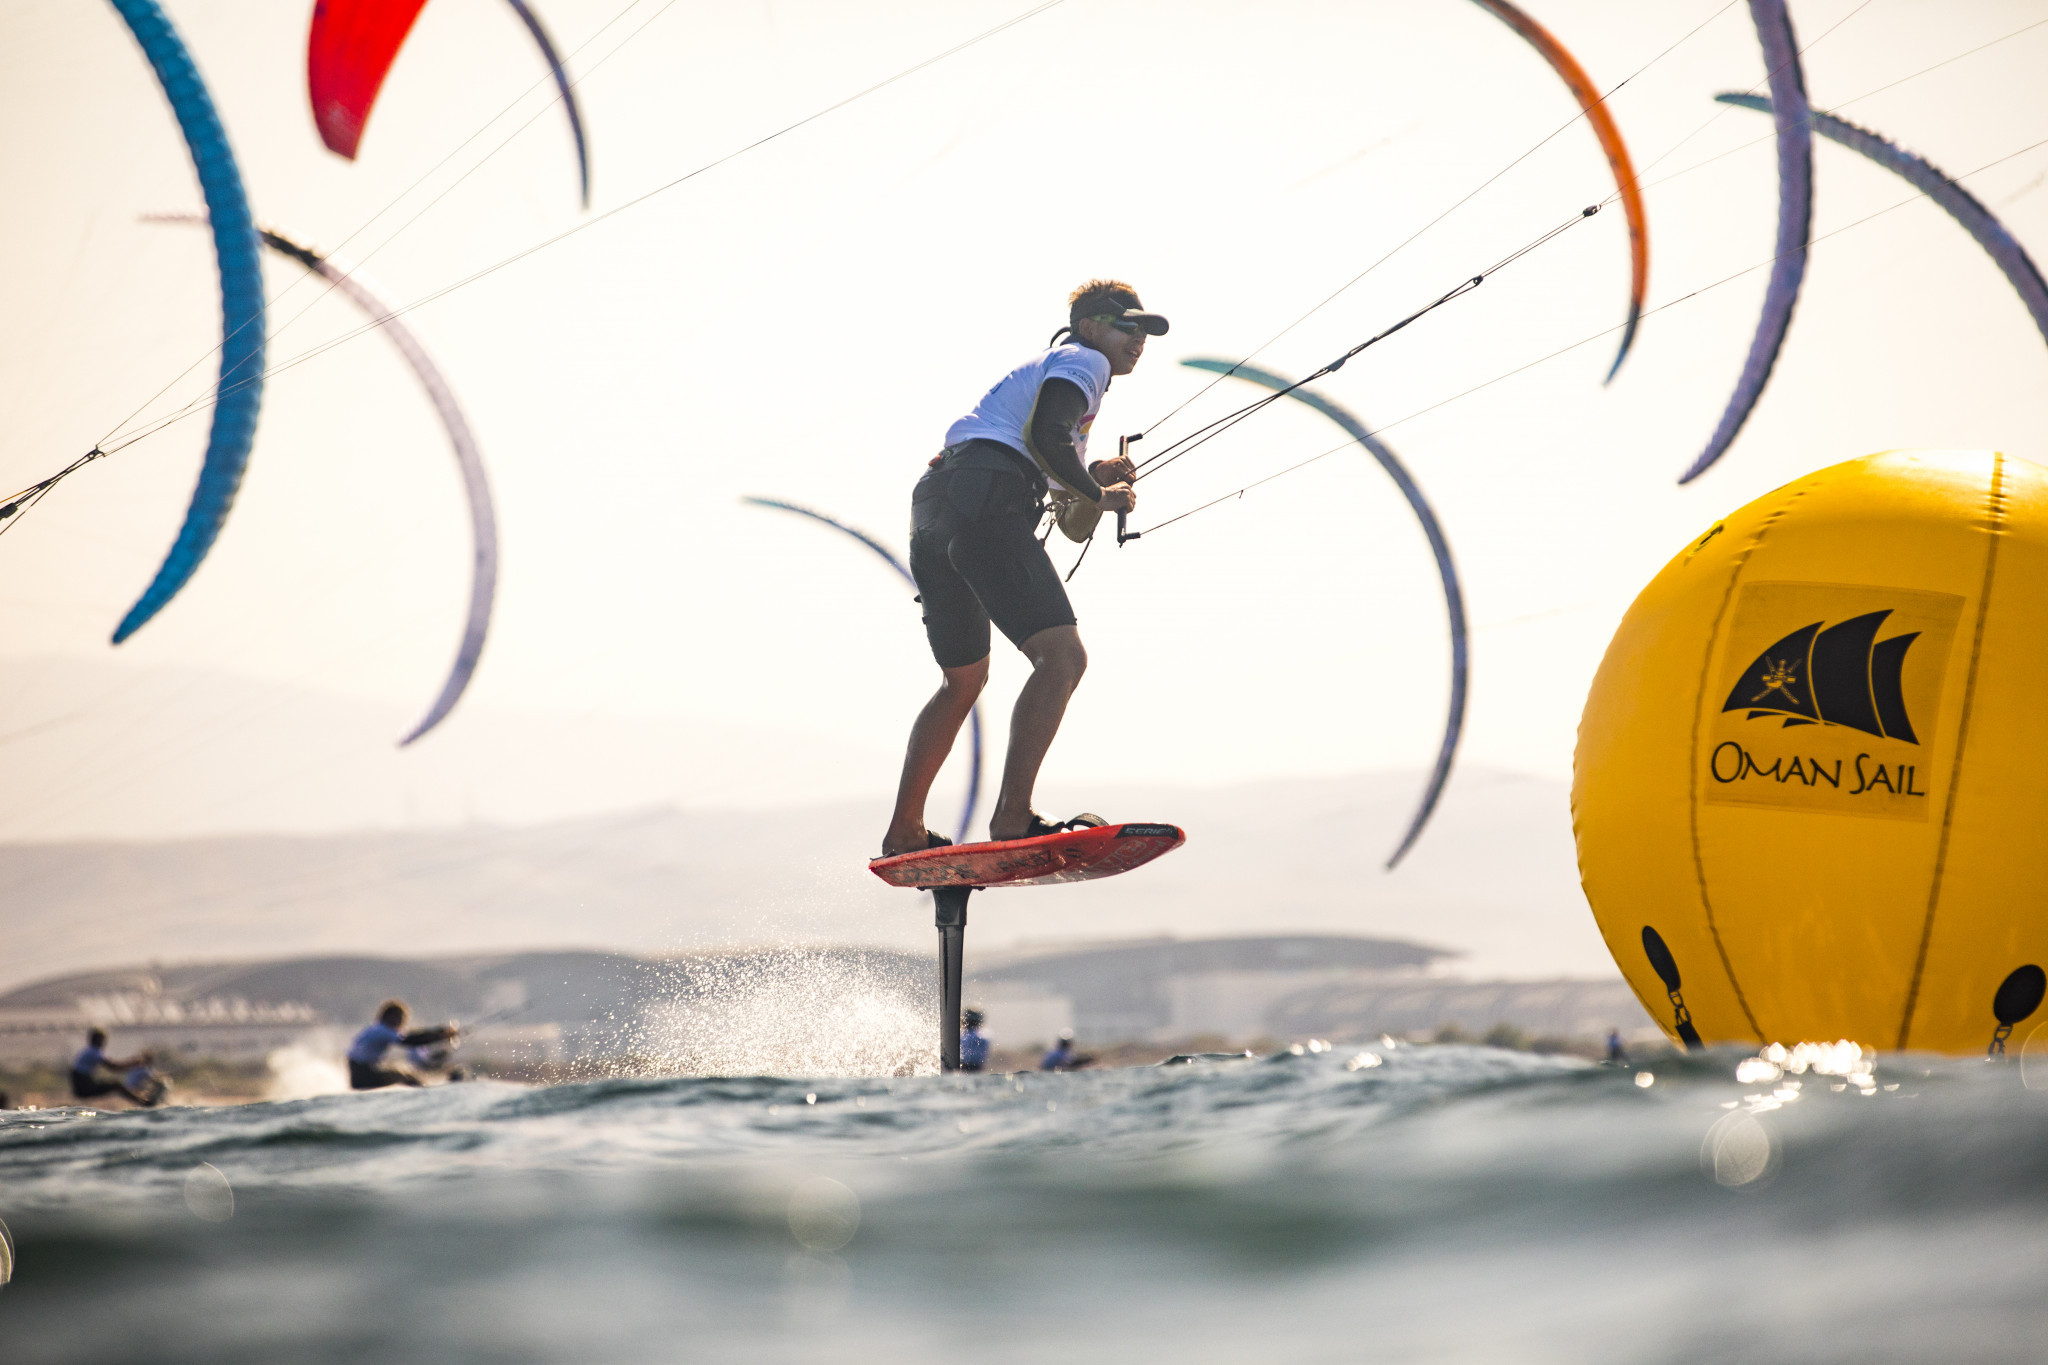 Frontrunners extend leads at IKA Formula Kite World Championships despite competition from chasing pack